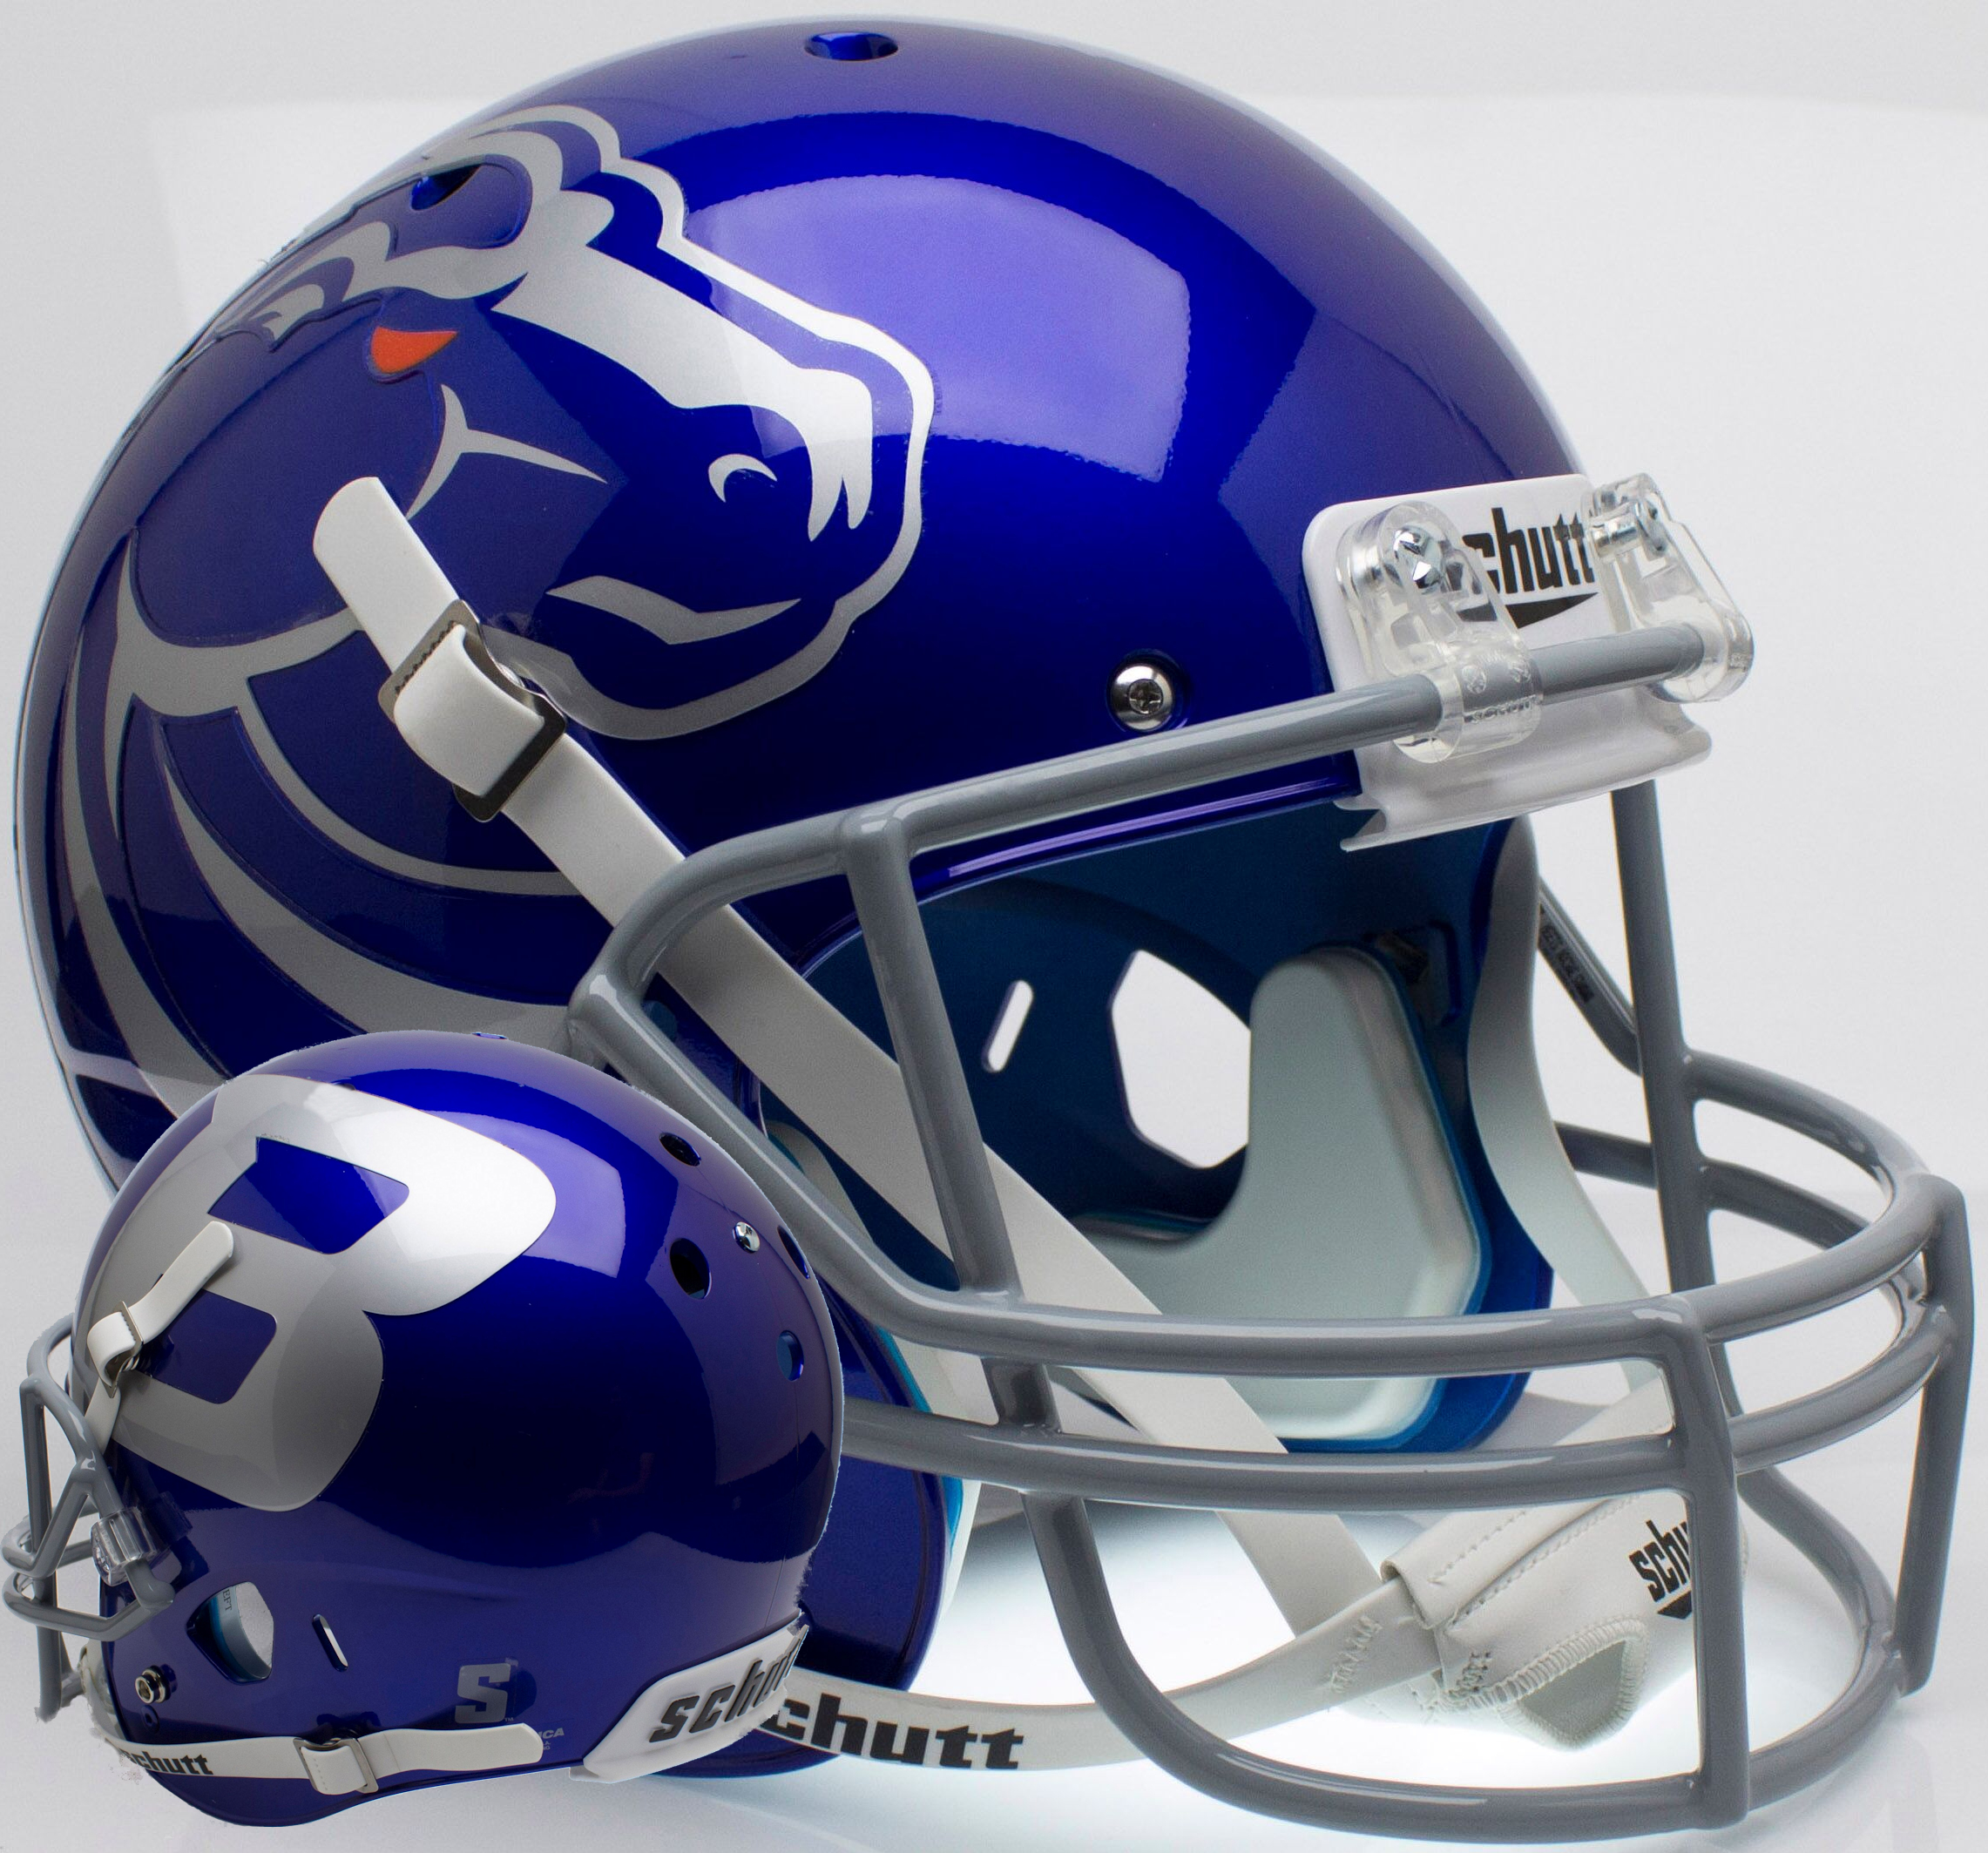 Boise State Broncos Full XP Replica Football Helmet Schutt <B>Blue</B>